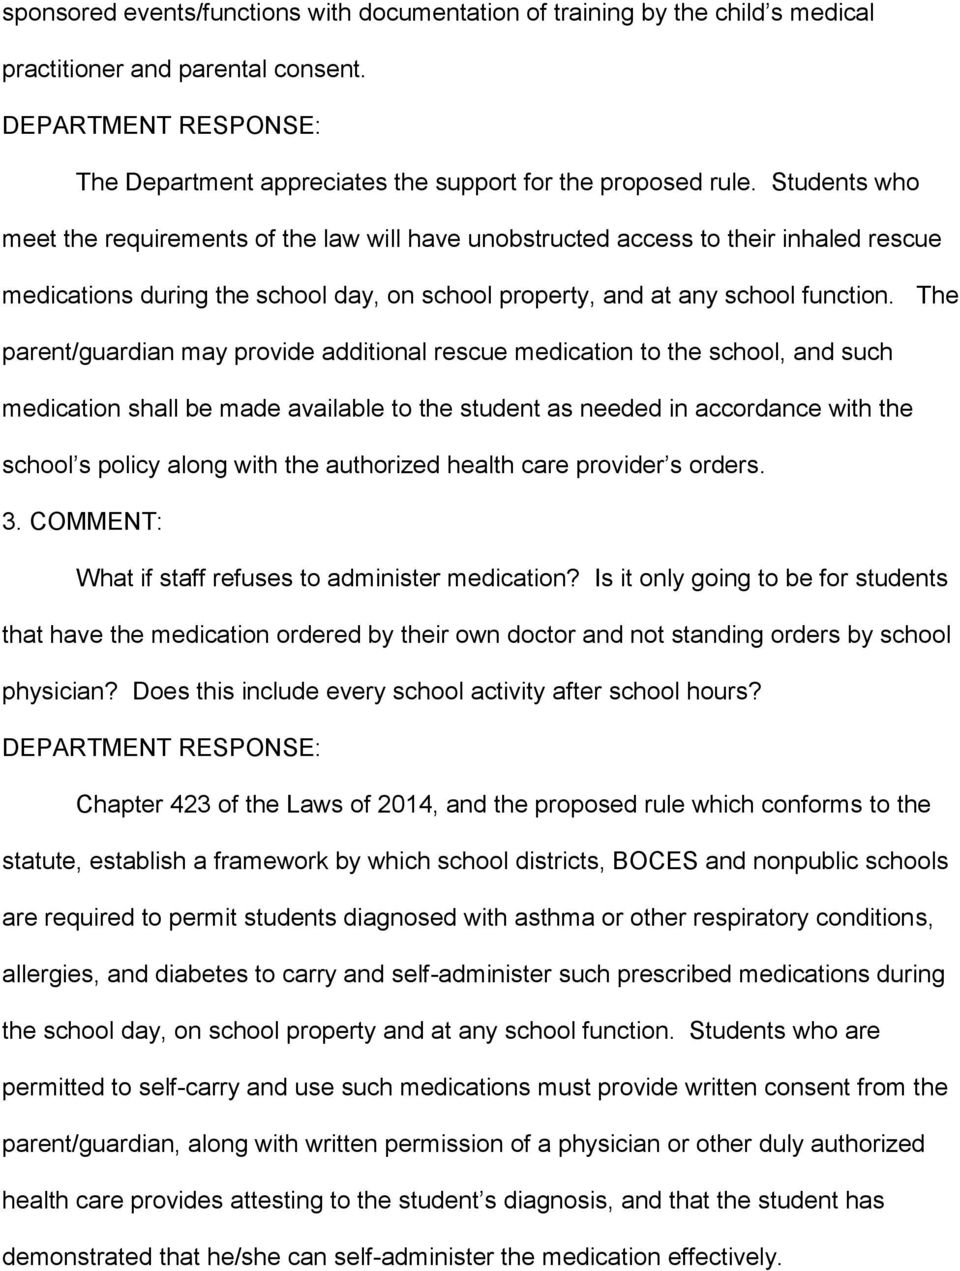 The parent/guardian may provide additional rescue medication to the school, and such medication shall be made available to the student as needed in accordance with the school s policy along with the